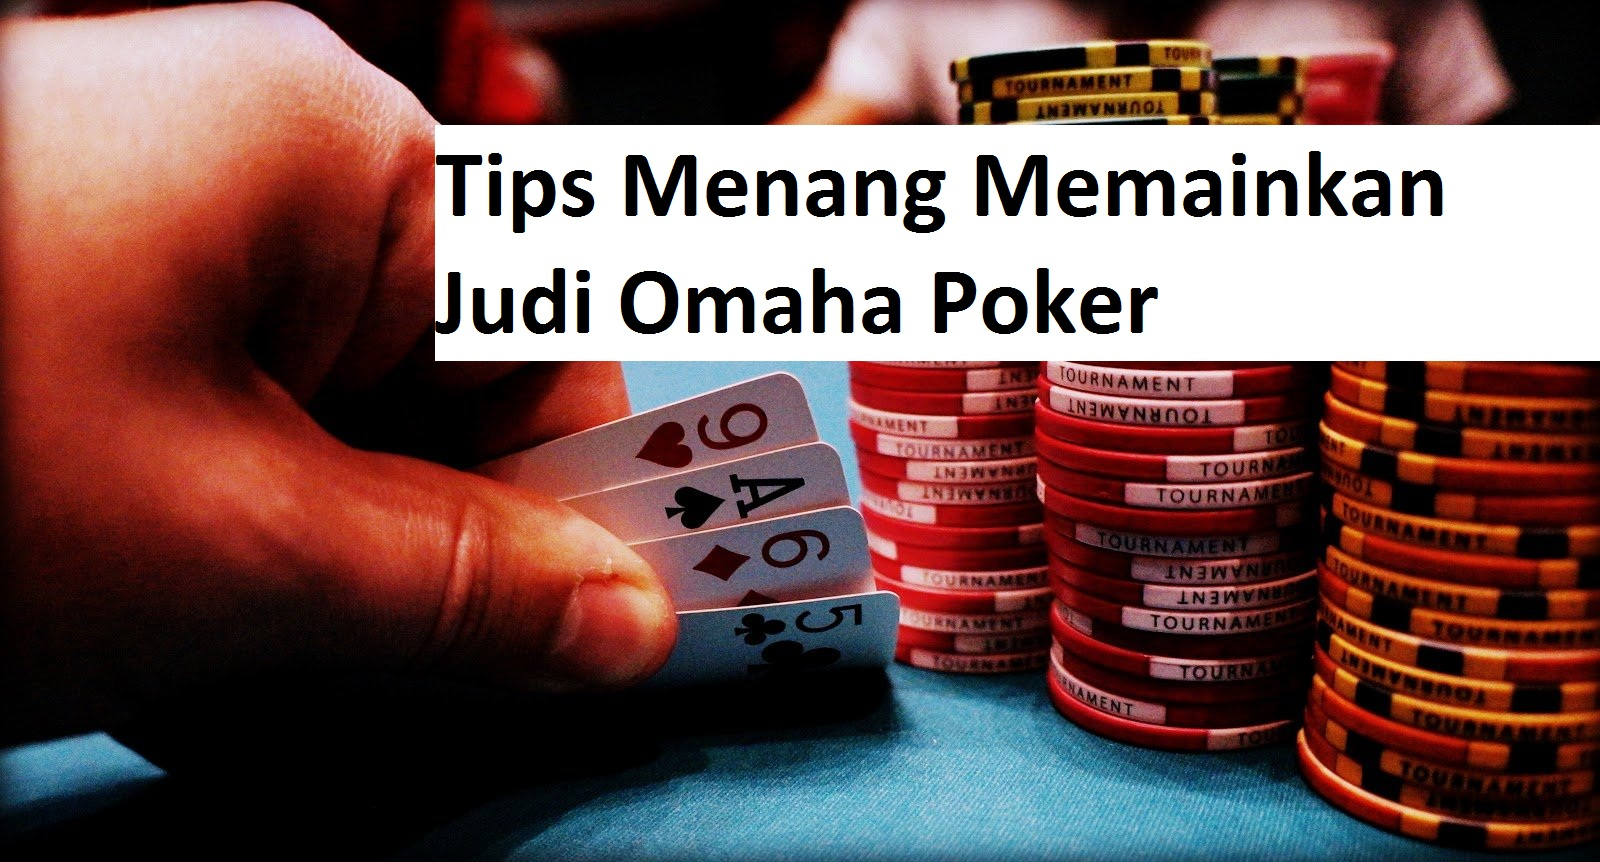 Tips Menang Memainkan Judi Omaha Poker